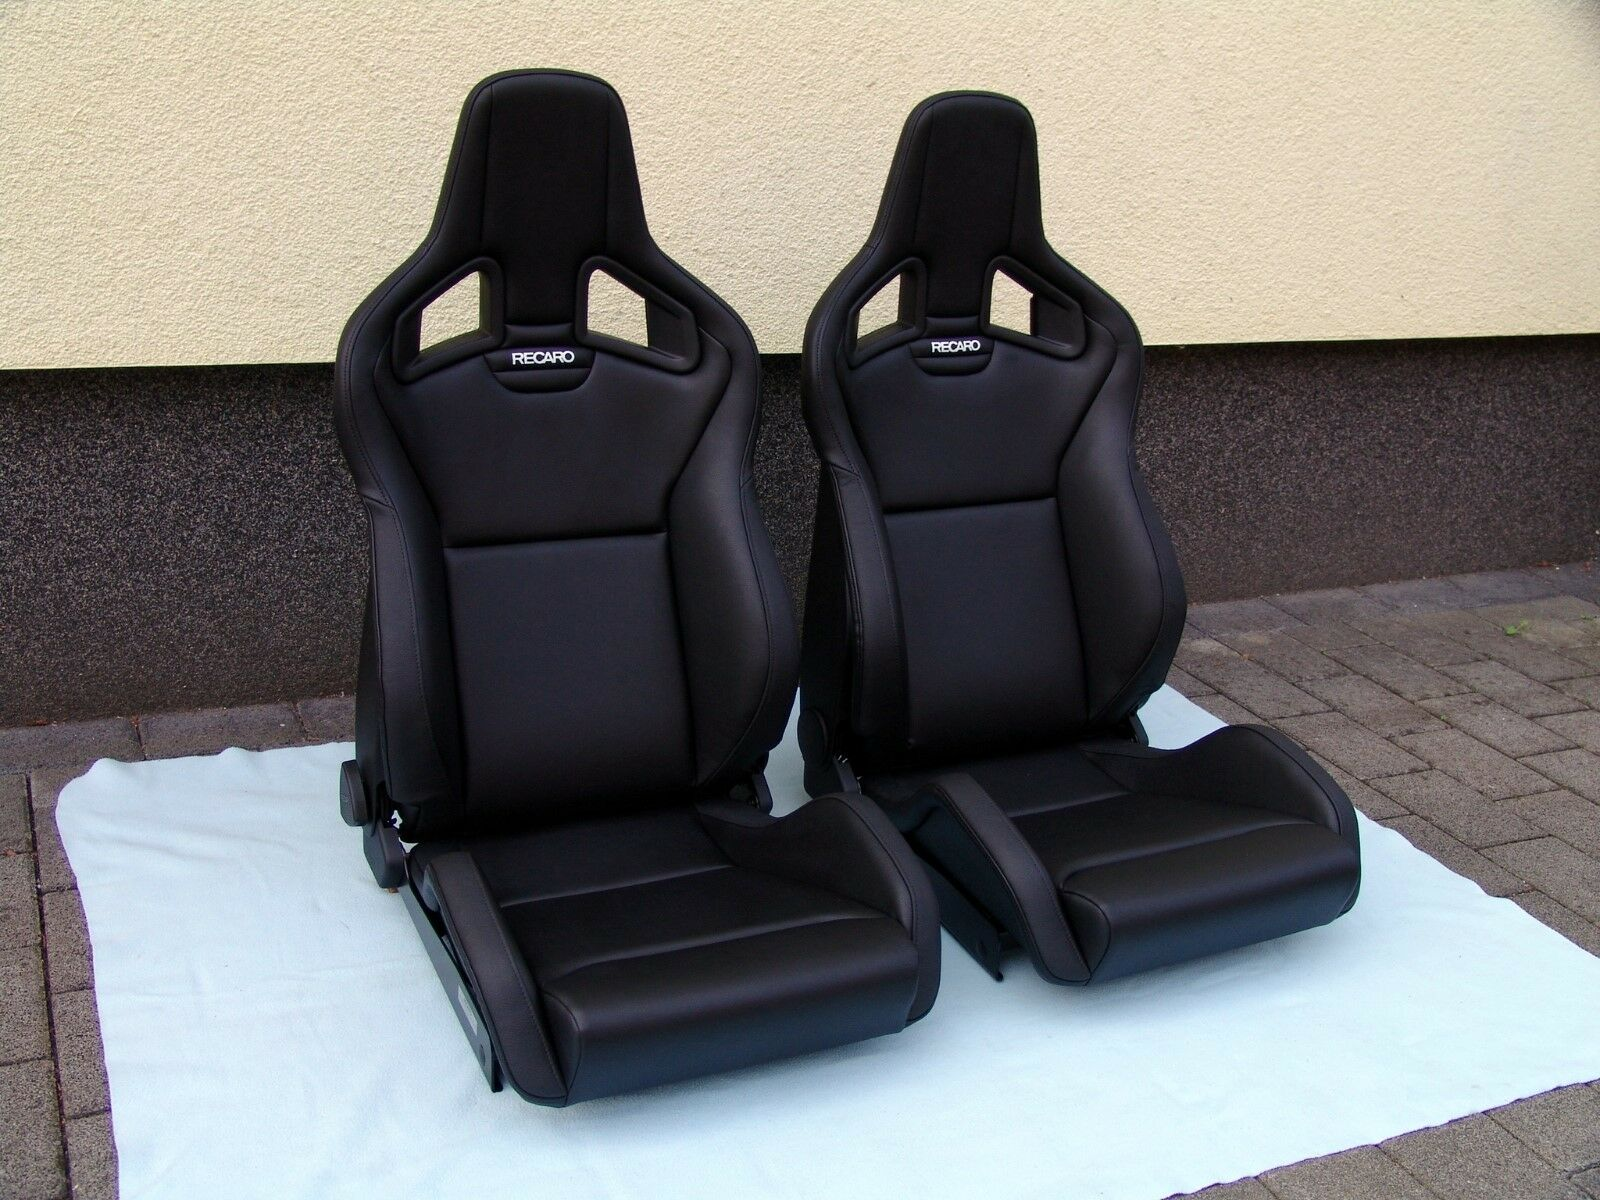 Recaro Sportster Cs Seats Artificial Leather Pair For Sale Online Ebay